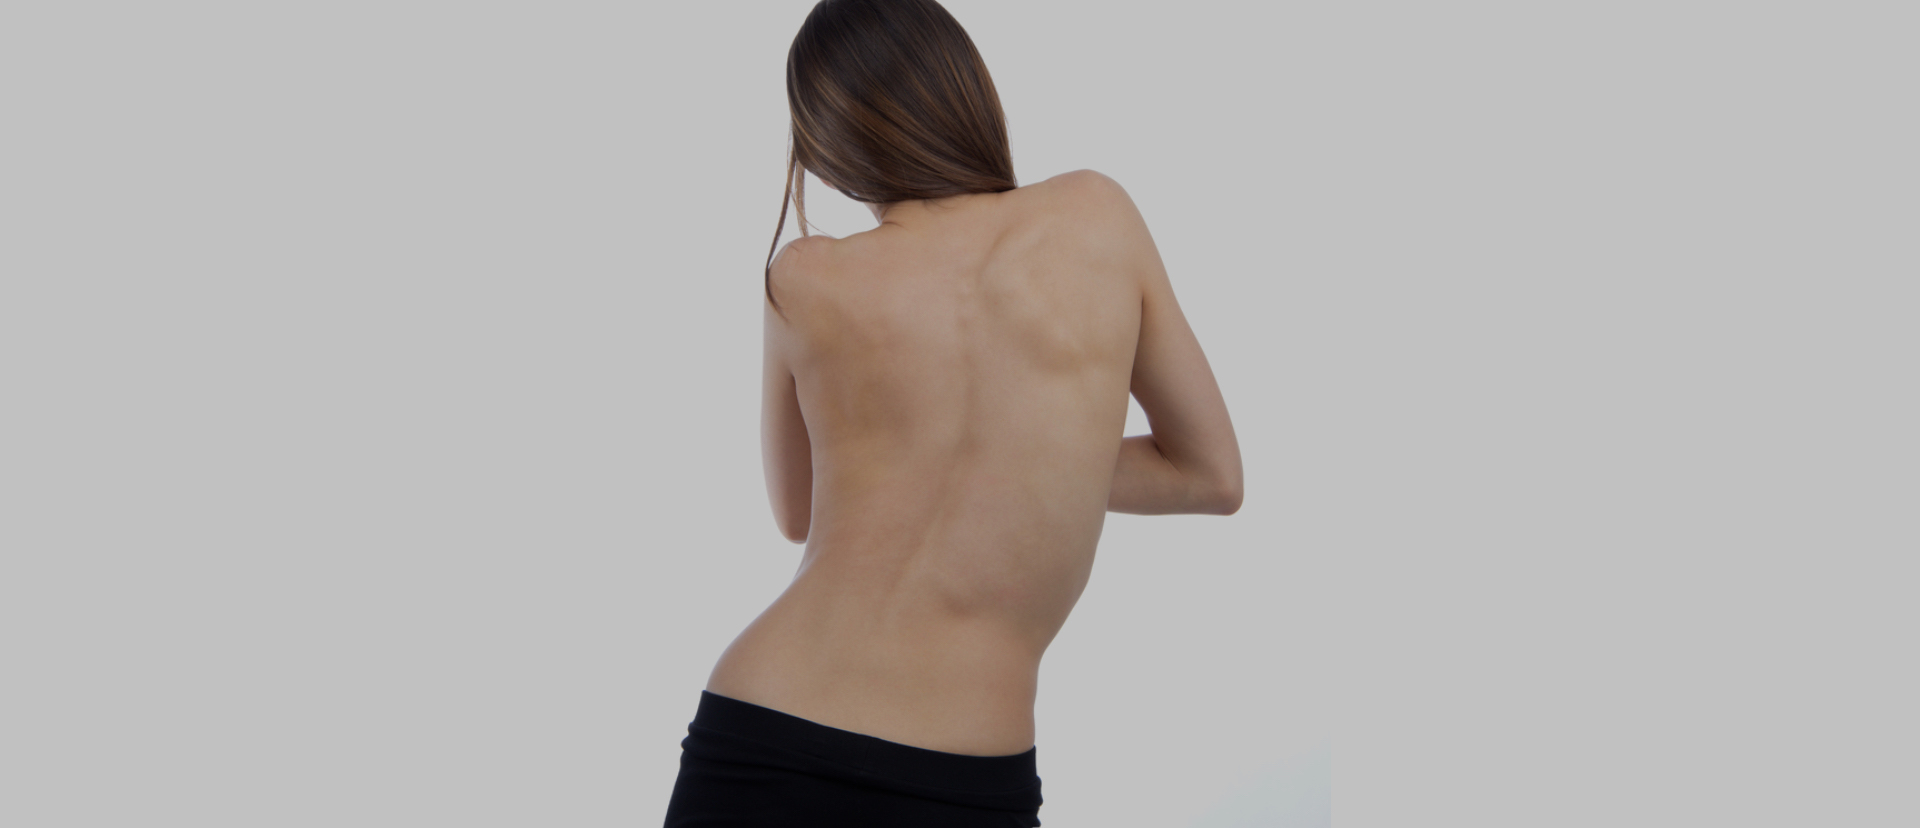 Treatment of scoliosis in adults